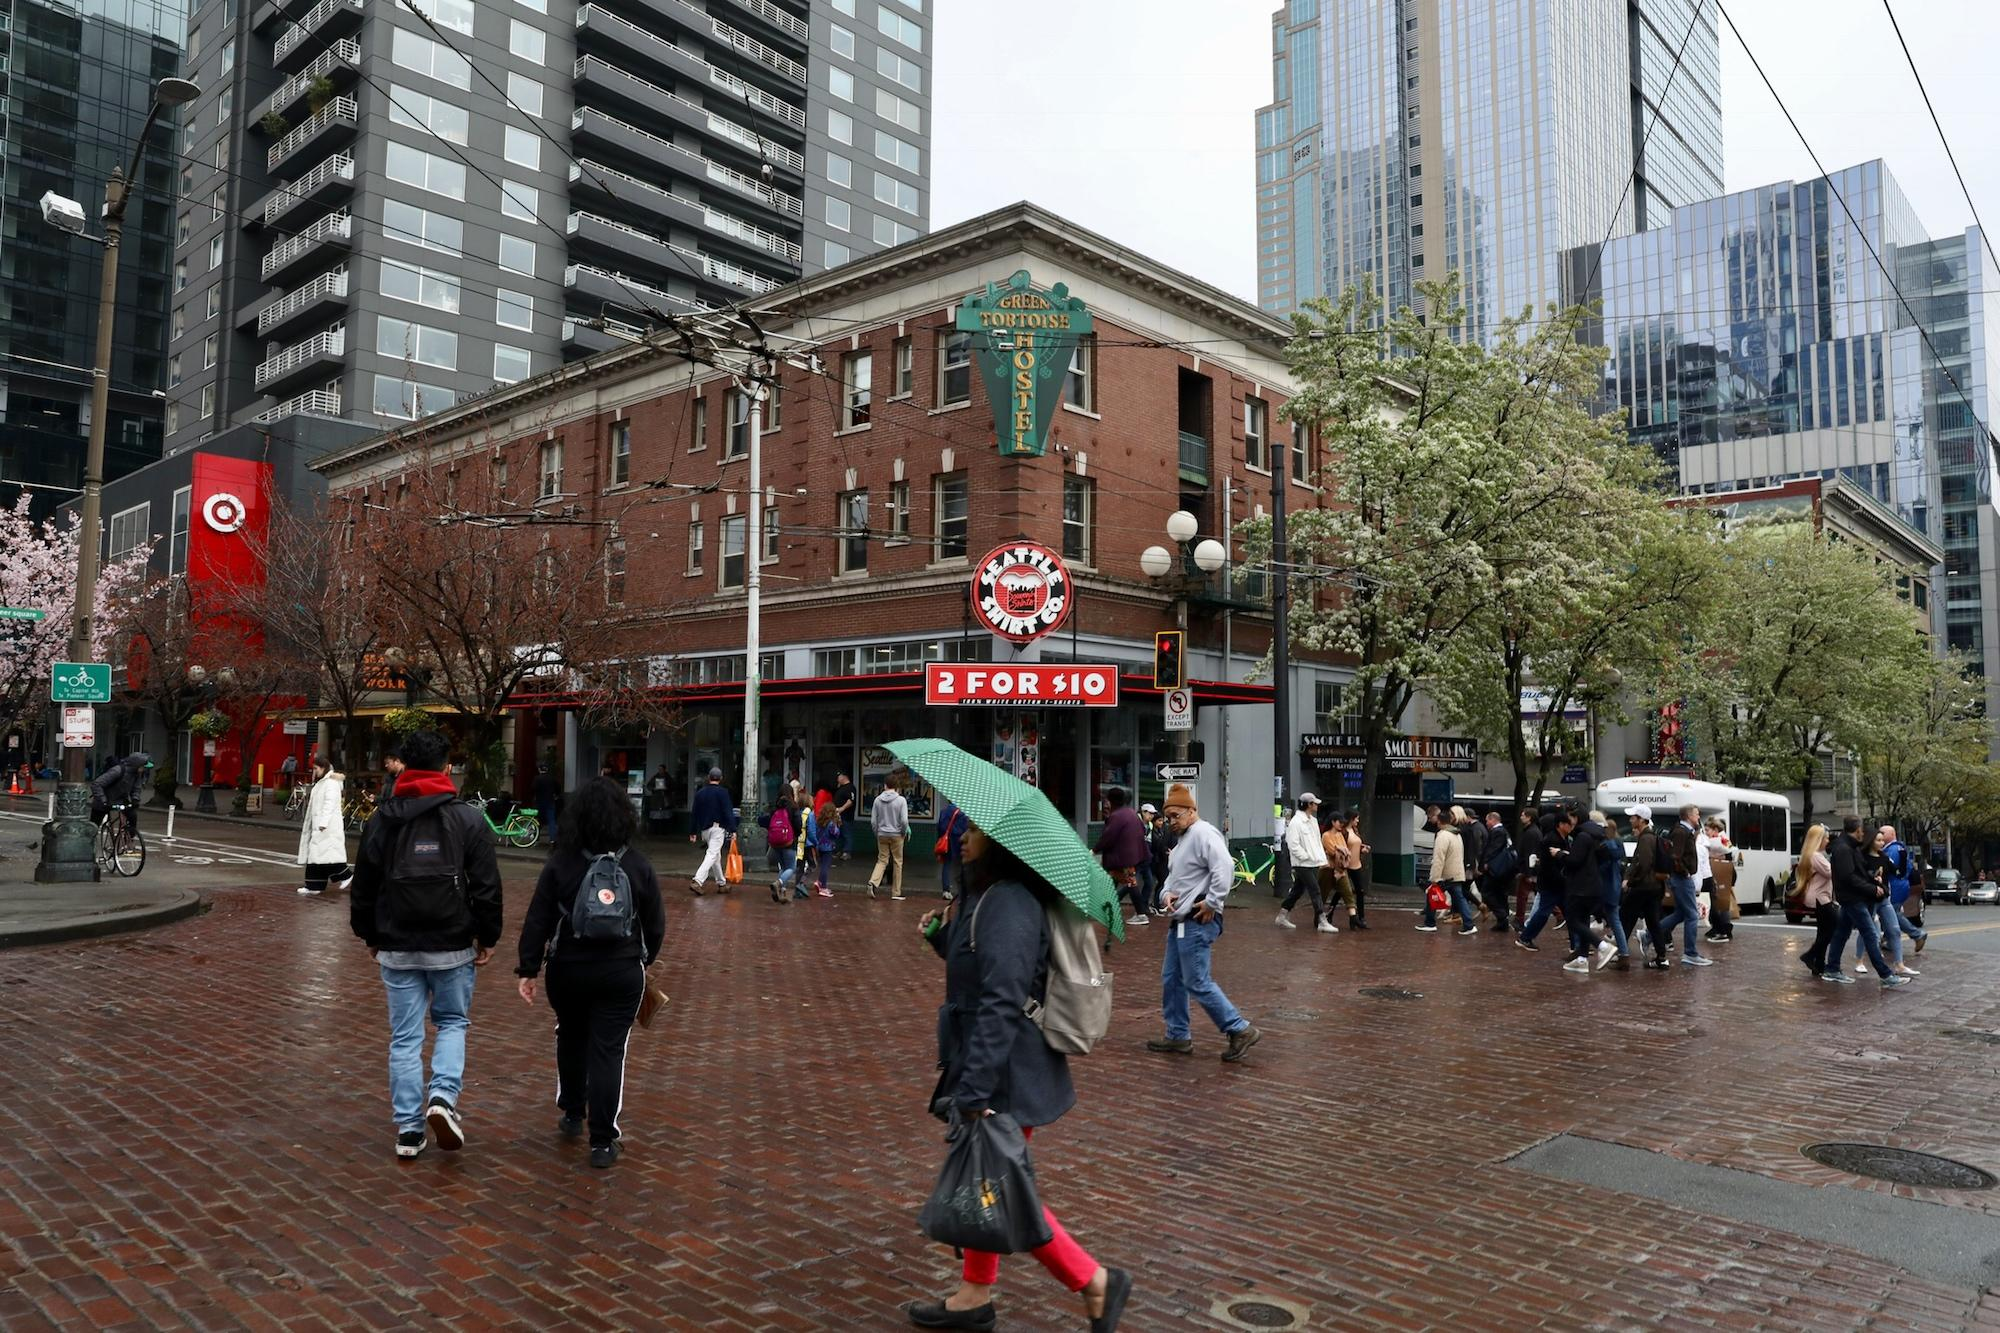 The red brick building at the entrance to Pike Place Market is slated for redevelopment